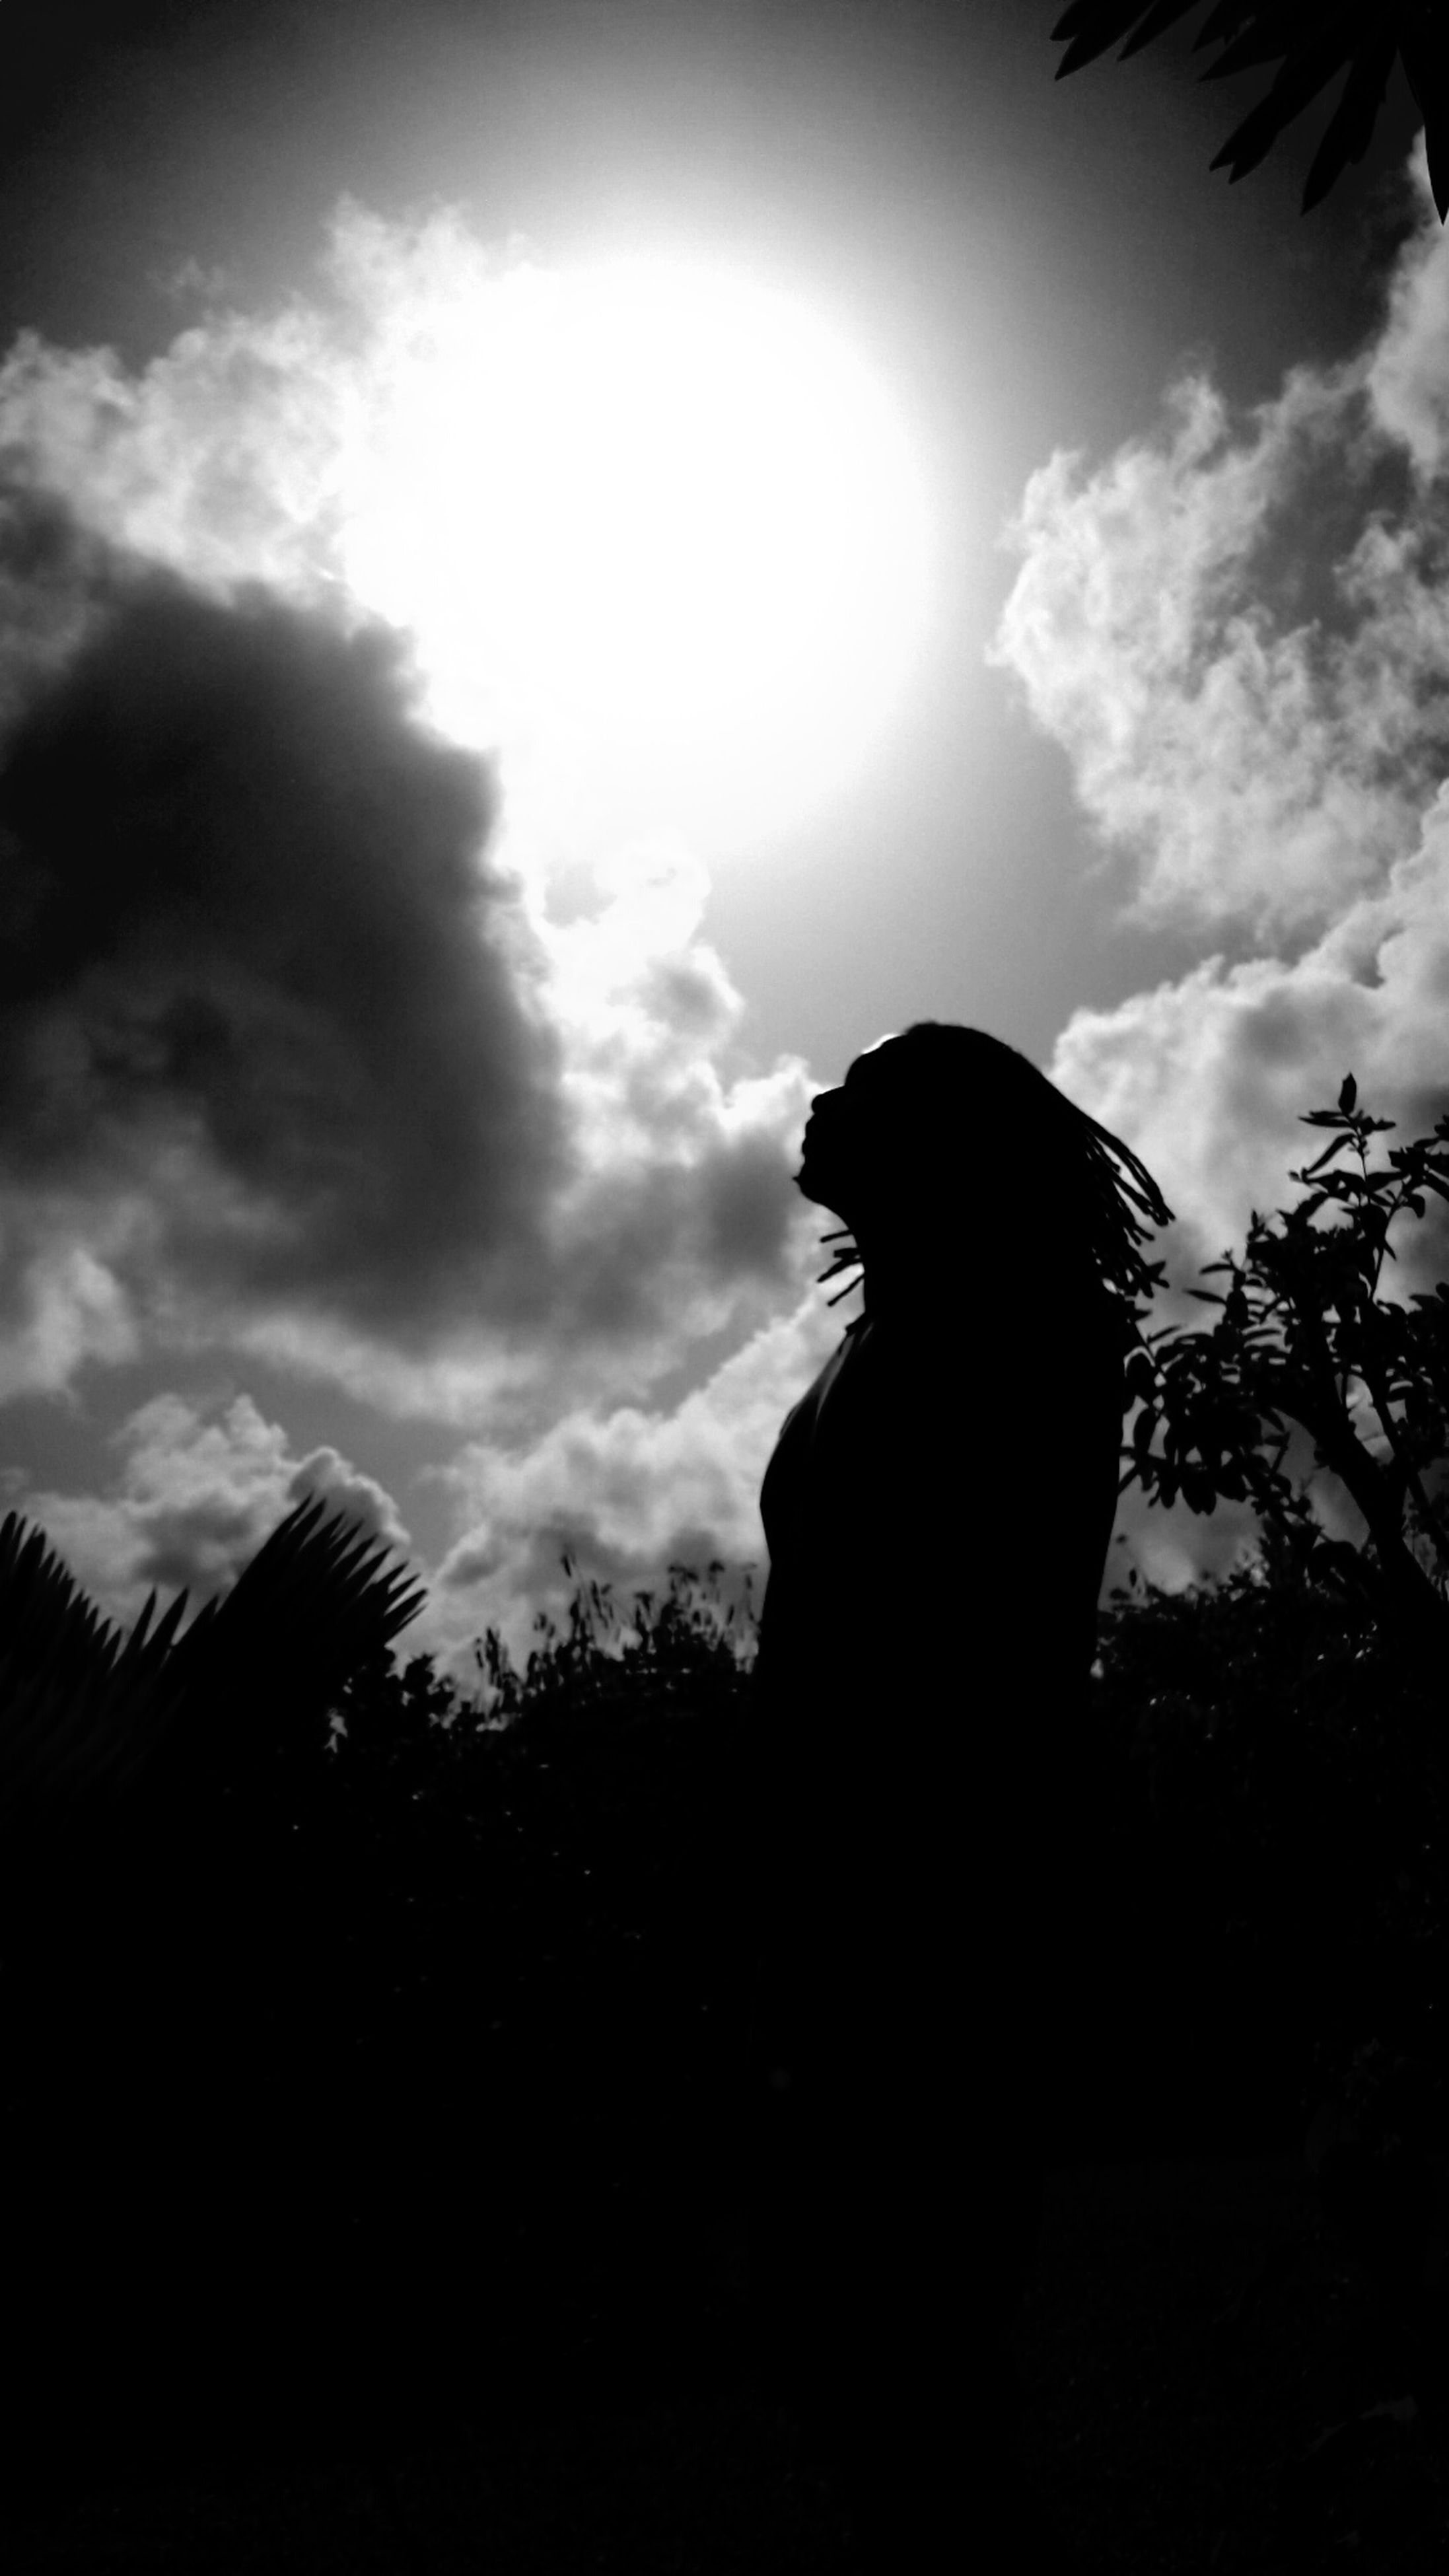 silhouette, sky, real people, one person, cloud - sky, lifestyles, leisure activity, standing, women, low angle view, outdoors, men, nature, day, people